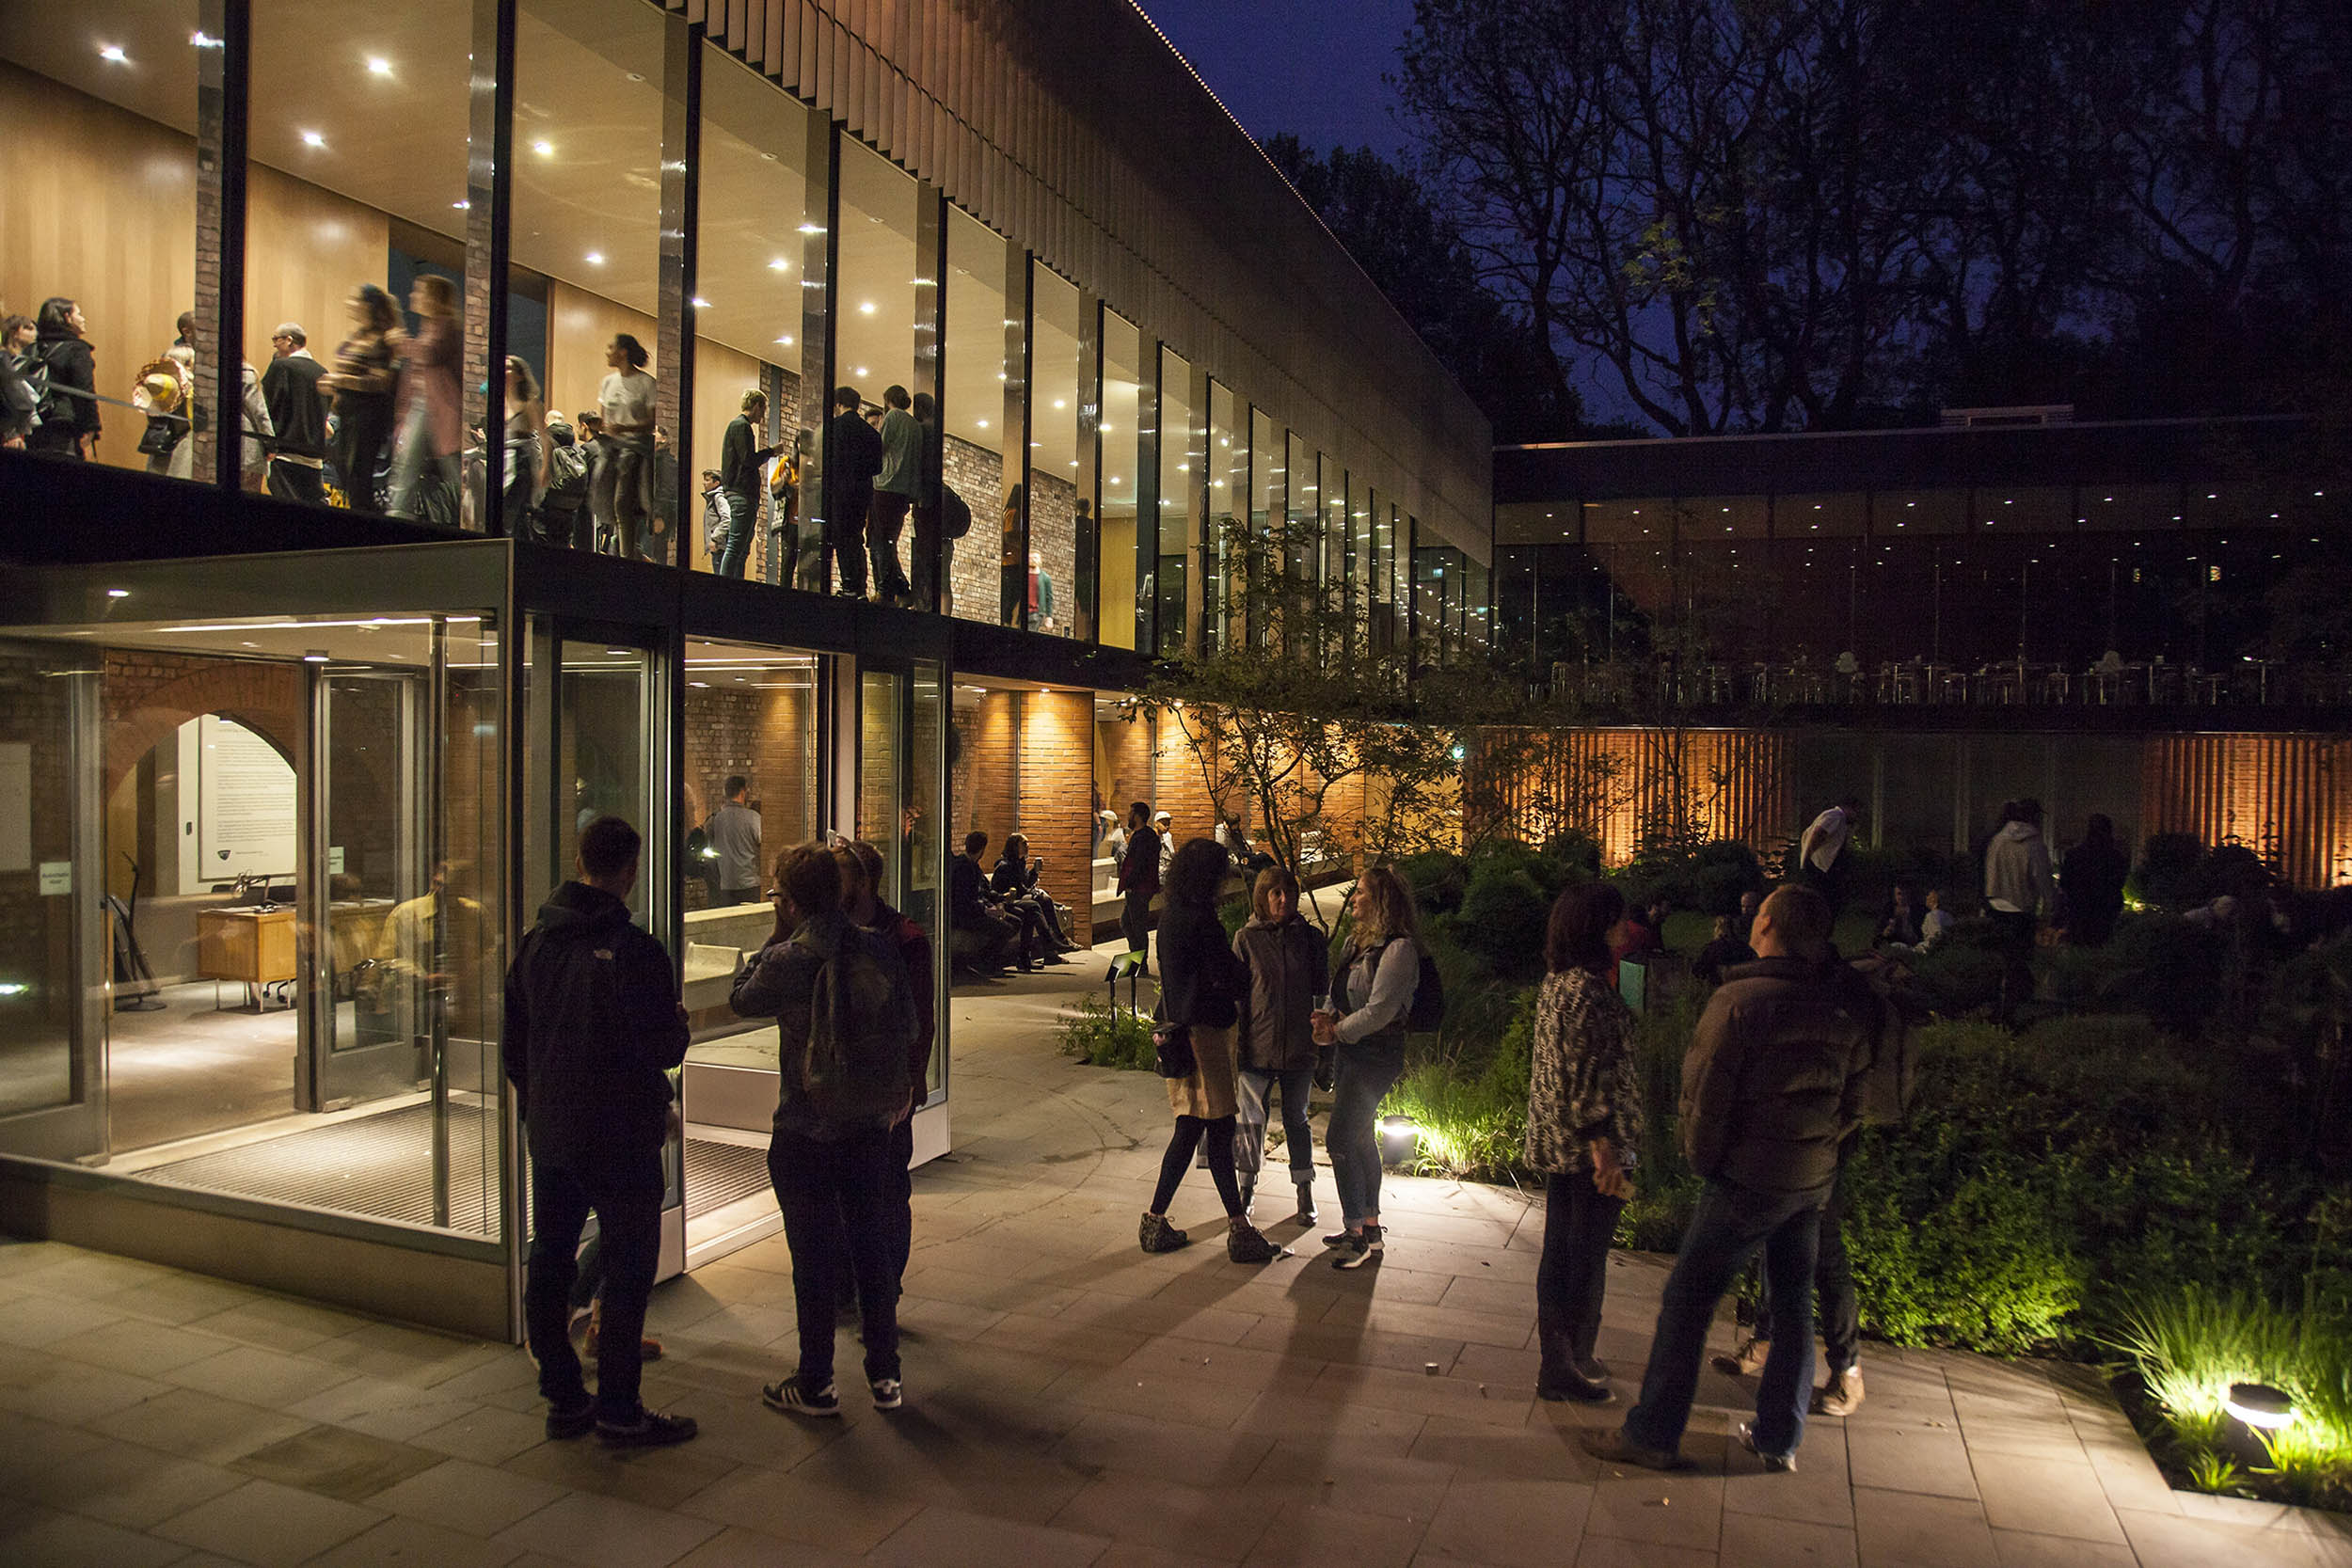 A documentary photograph of the public outdoors during an art opening.  Photography commissioned by Whitworth Art Gallery, Manchester